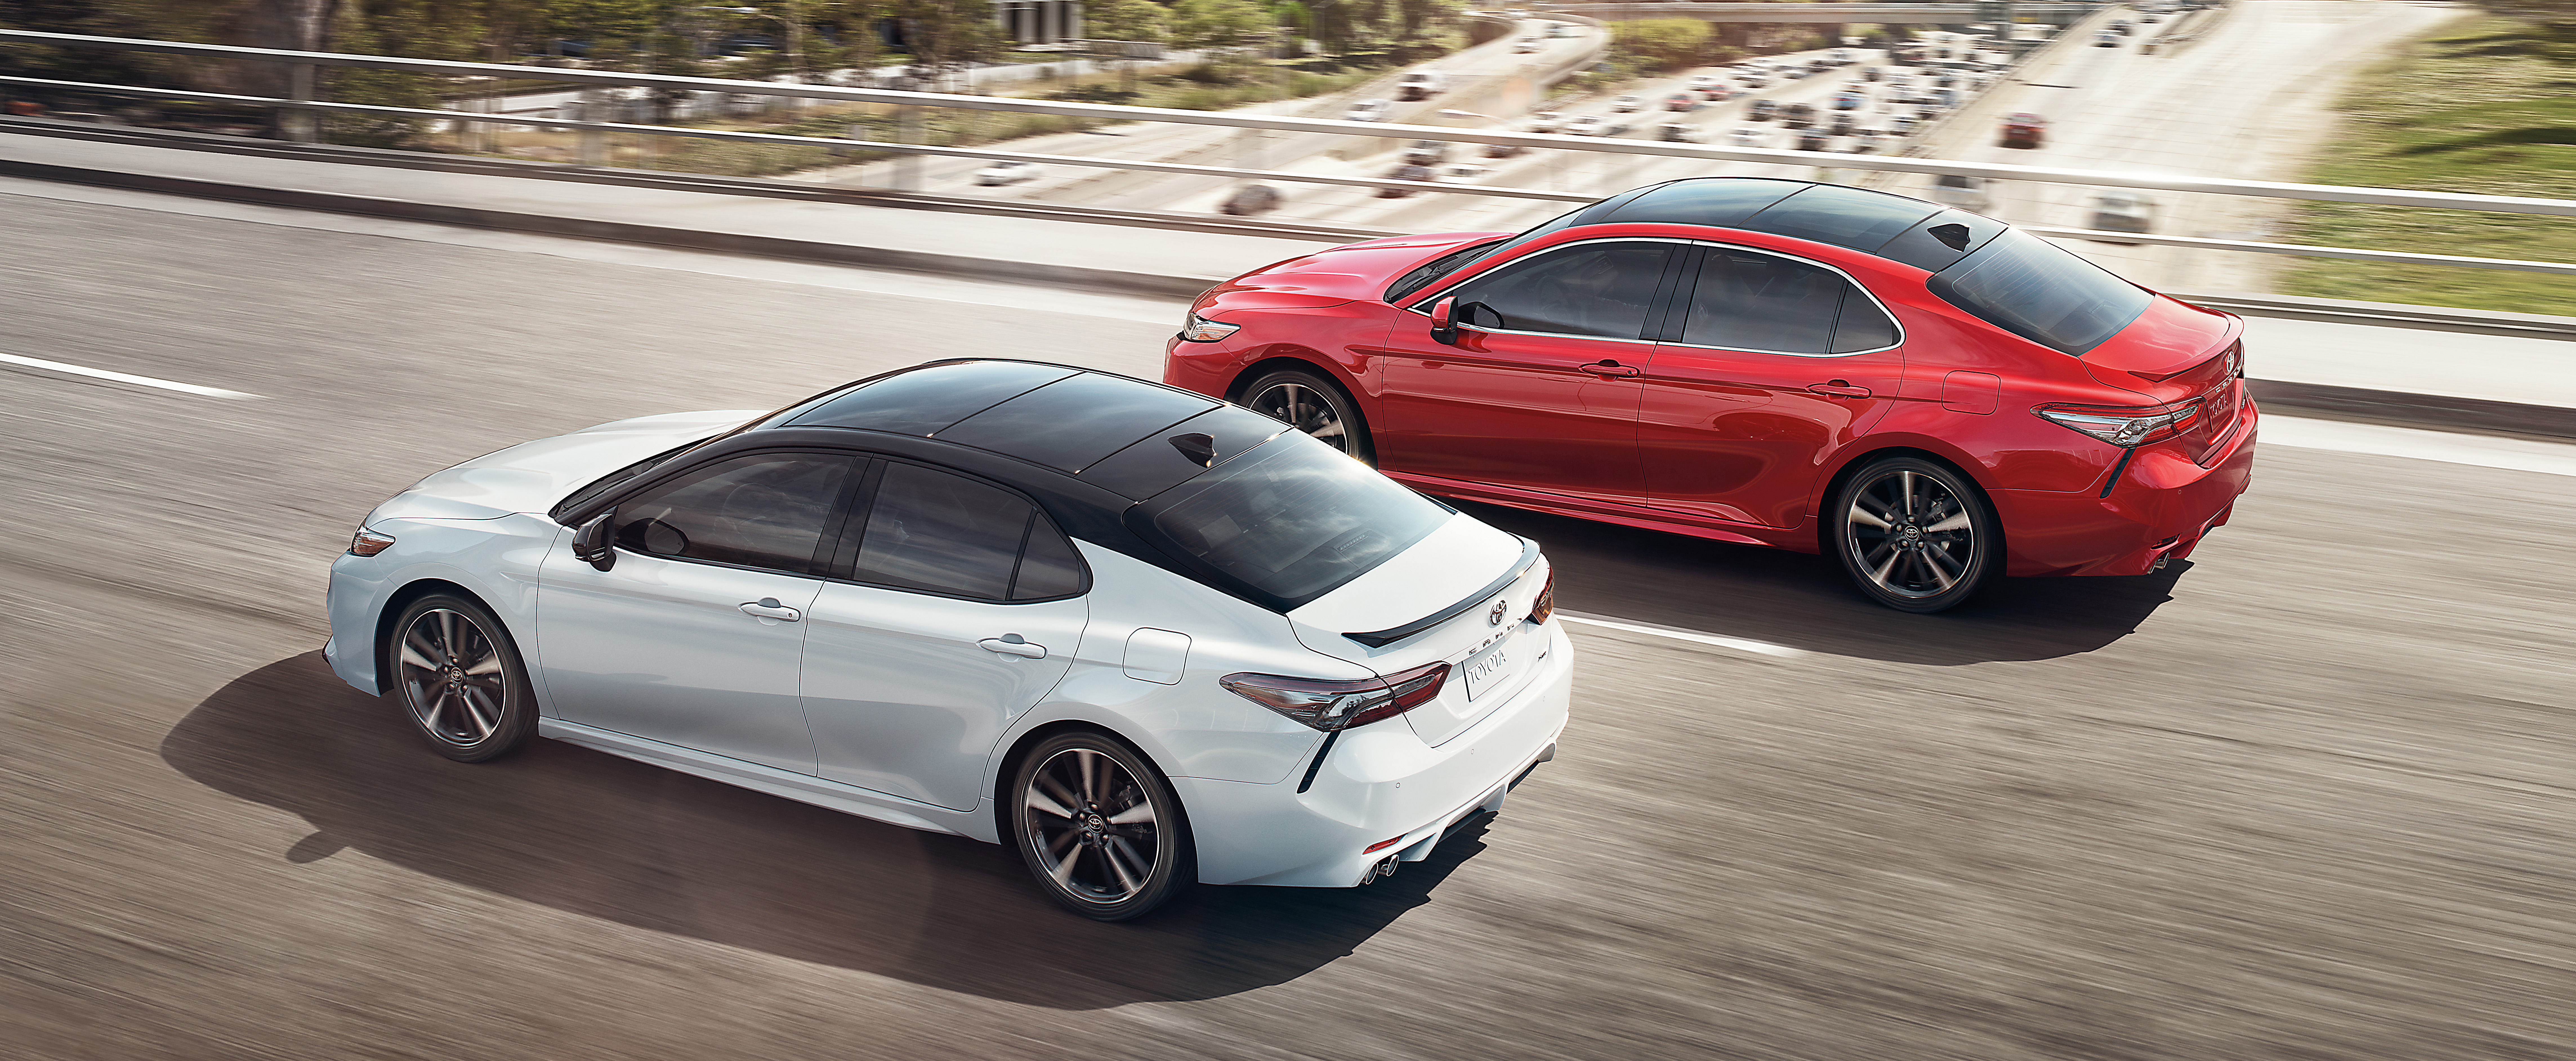 Accord Vs Camry >> The 2019 Toyota Camry Vs The 2019 Honda Accord Which Sedan Is The